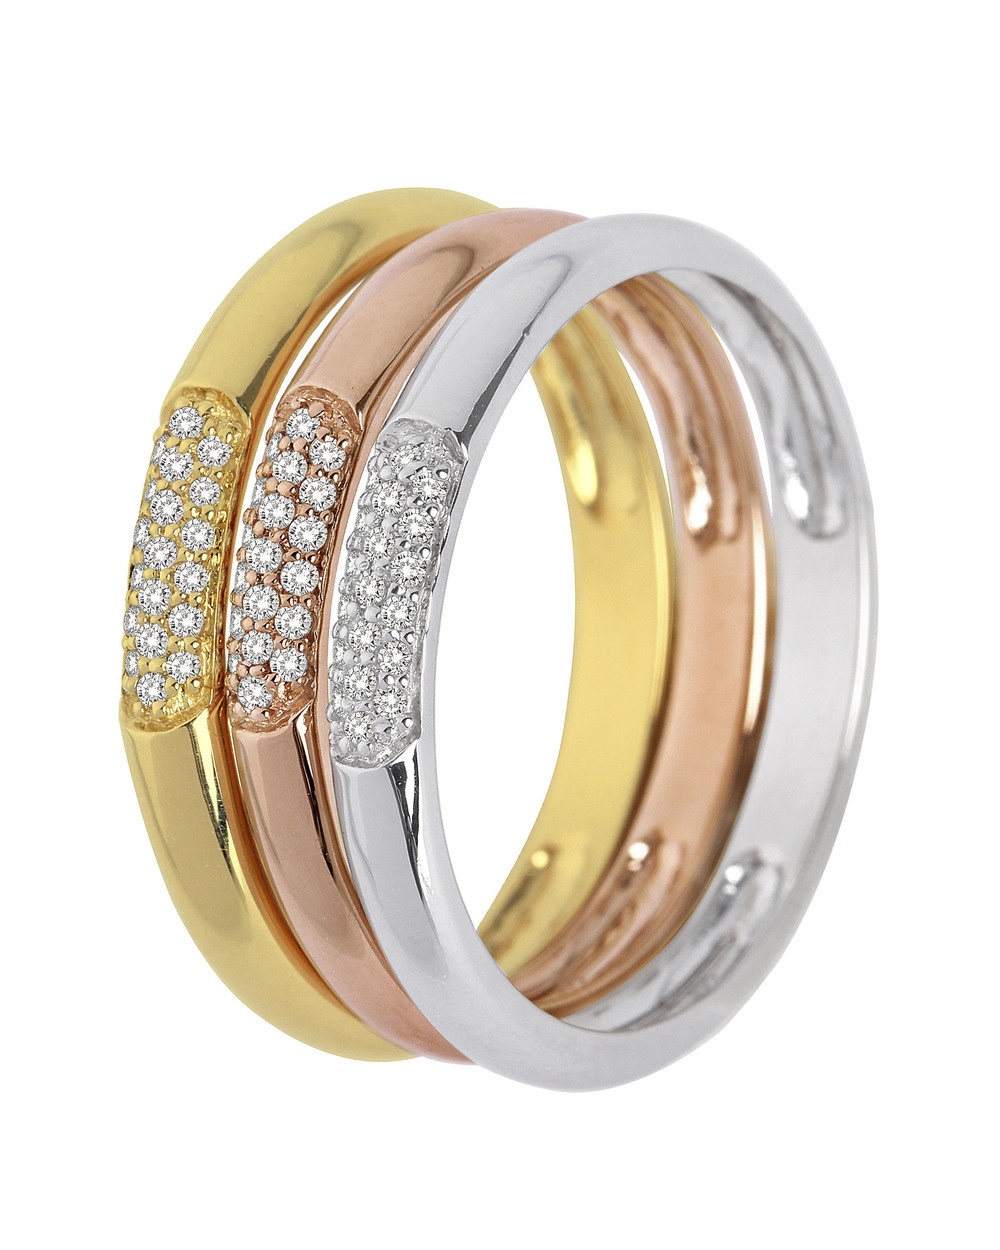 VALERIA, Ring aus 375 Tricolor Gold mit 0 18 Karat Diamanten 58